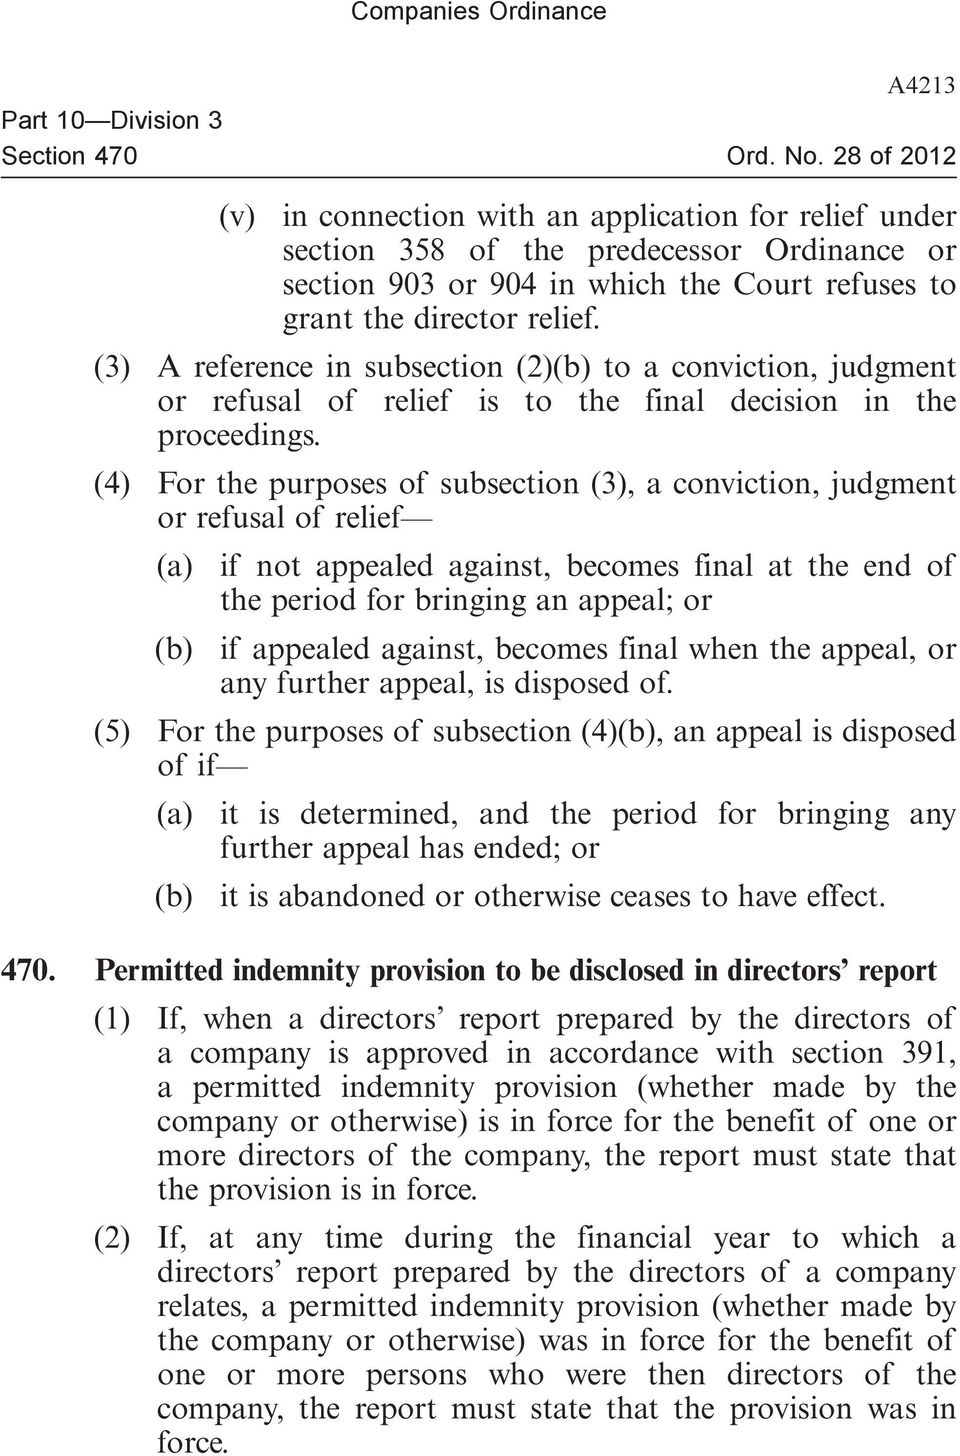 (4) For the purposes of subsection (3), a conviction, judgment or refusal of relief (a) if not appealed against, becomes final at the end of the period for bringing an appeal; or (b) if appealed